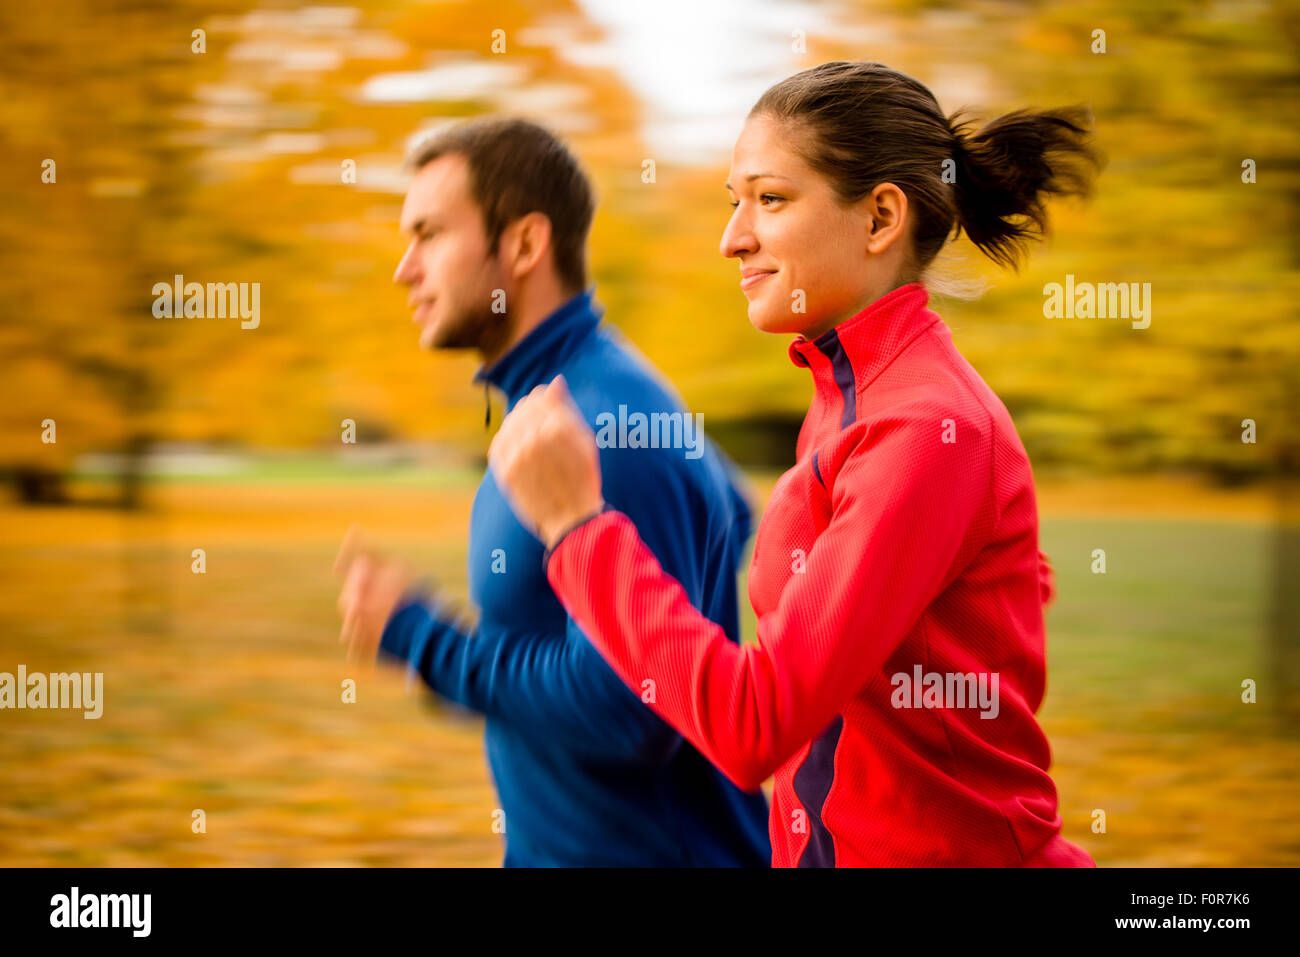 Panning photo of young couple jogging together in nature - Stock Image